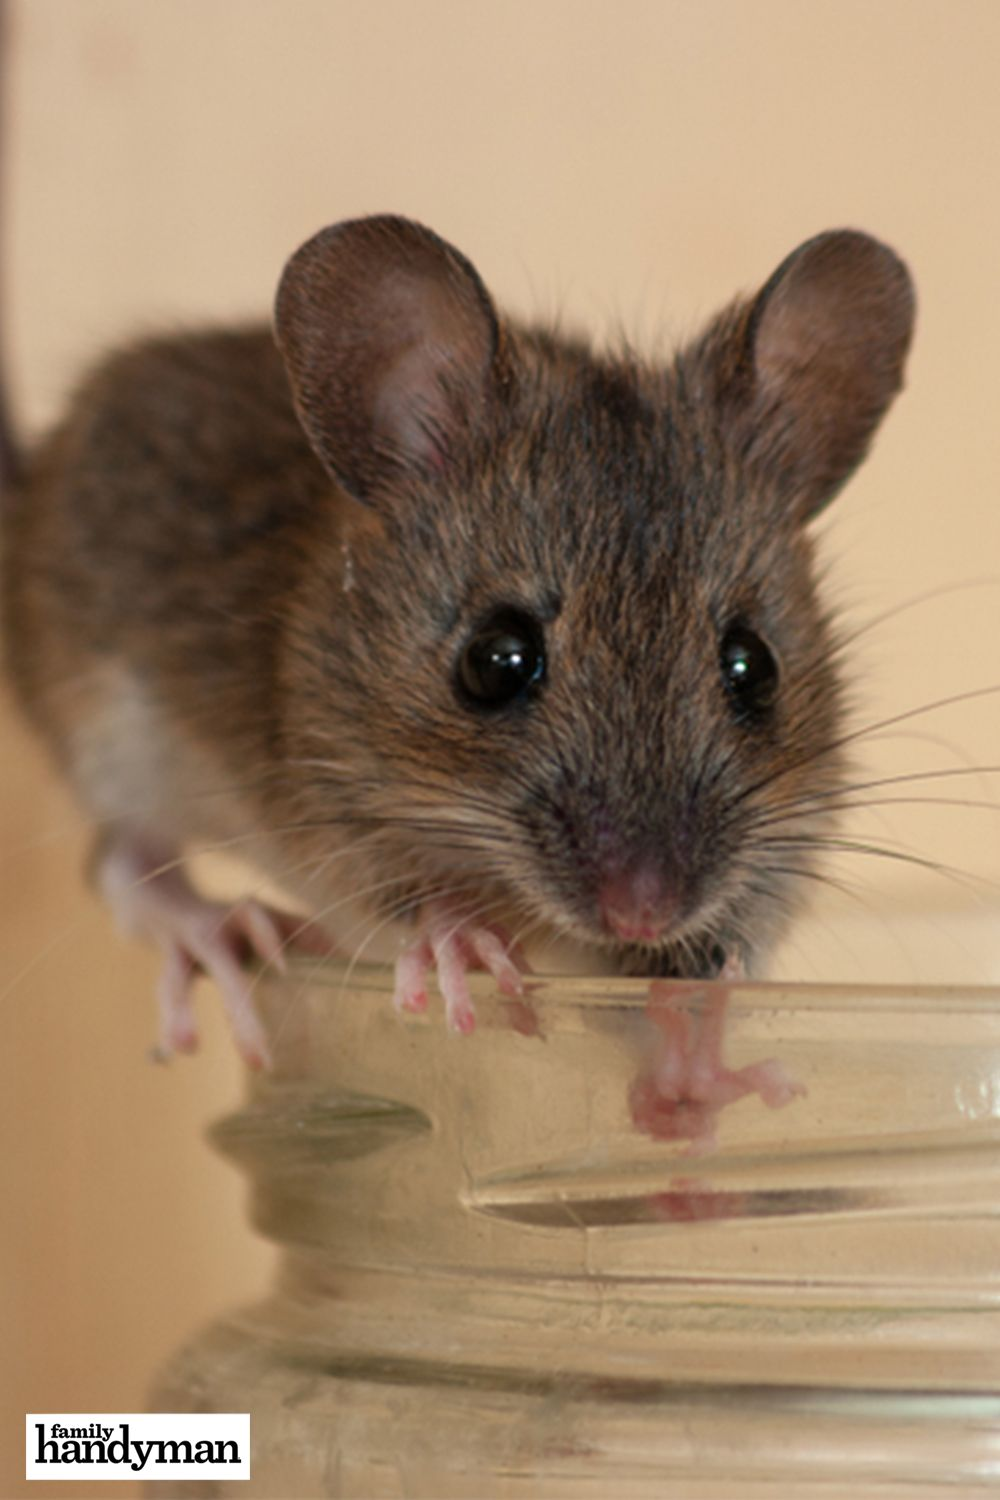 How To Get Rid Of Mice In Your House In 2020 Getting Rid Of Mice